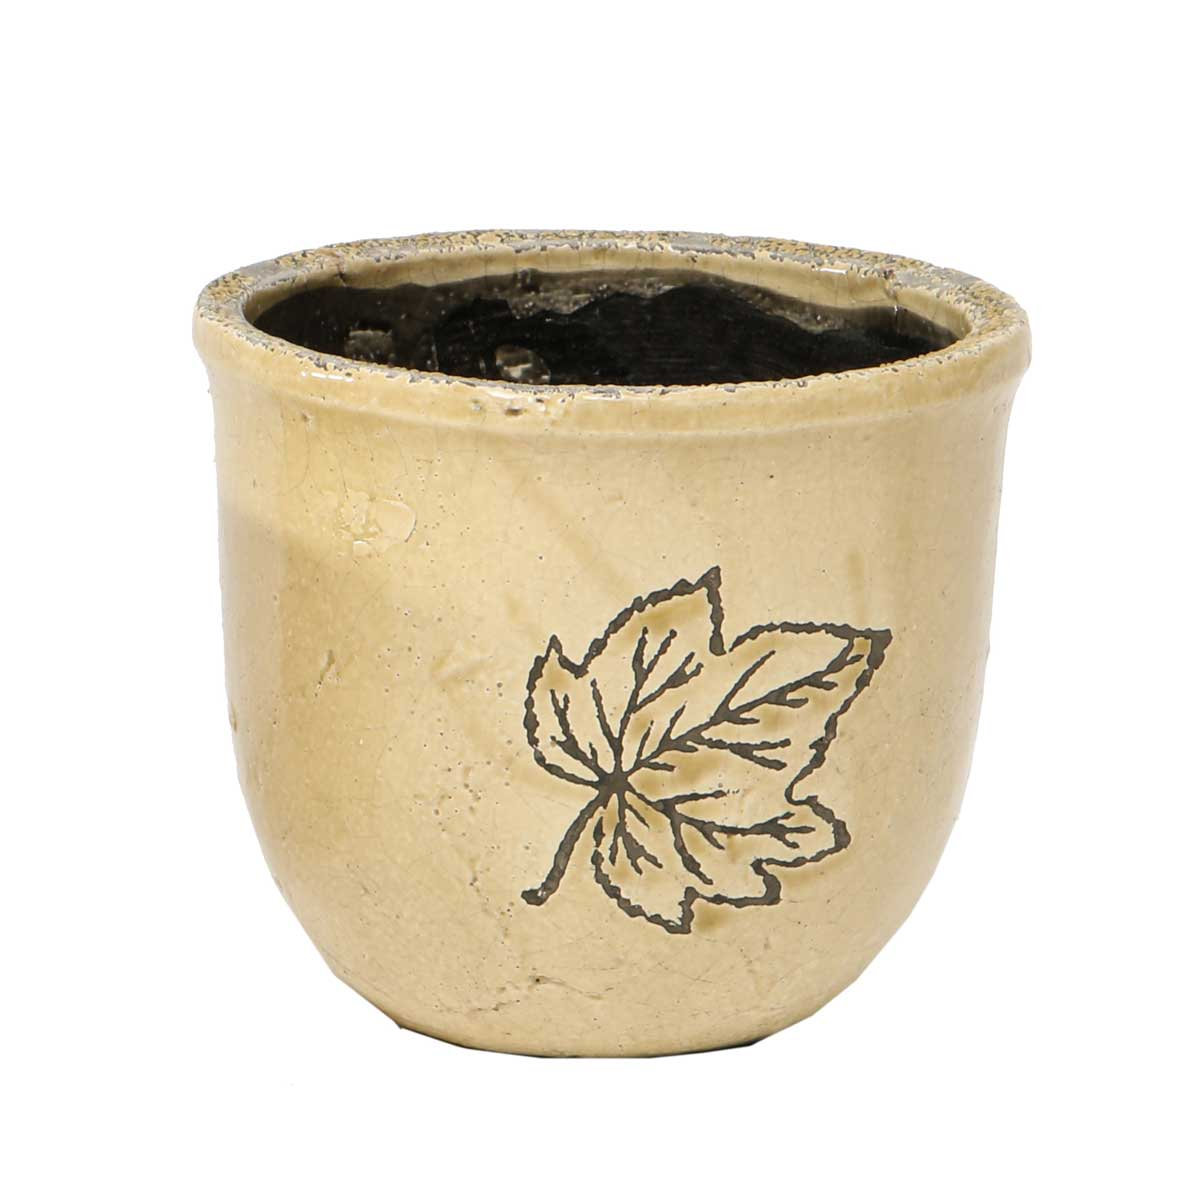 "Ceramic Leaf Cache Pot 5.5""x6"" A2069 TN v22"